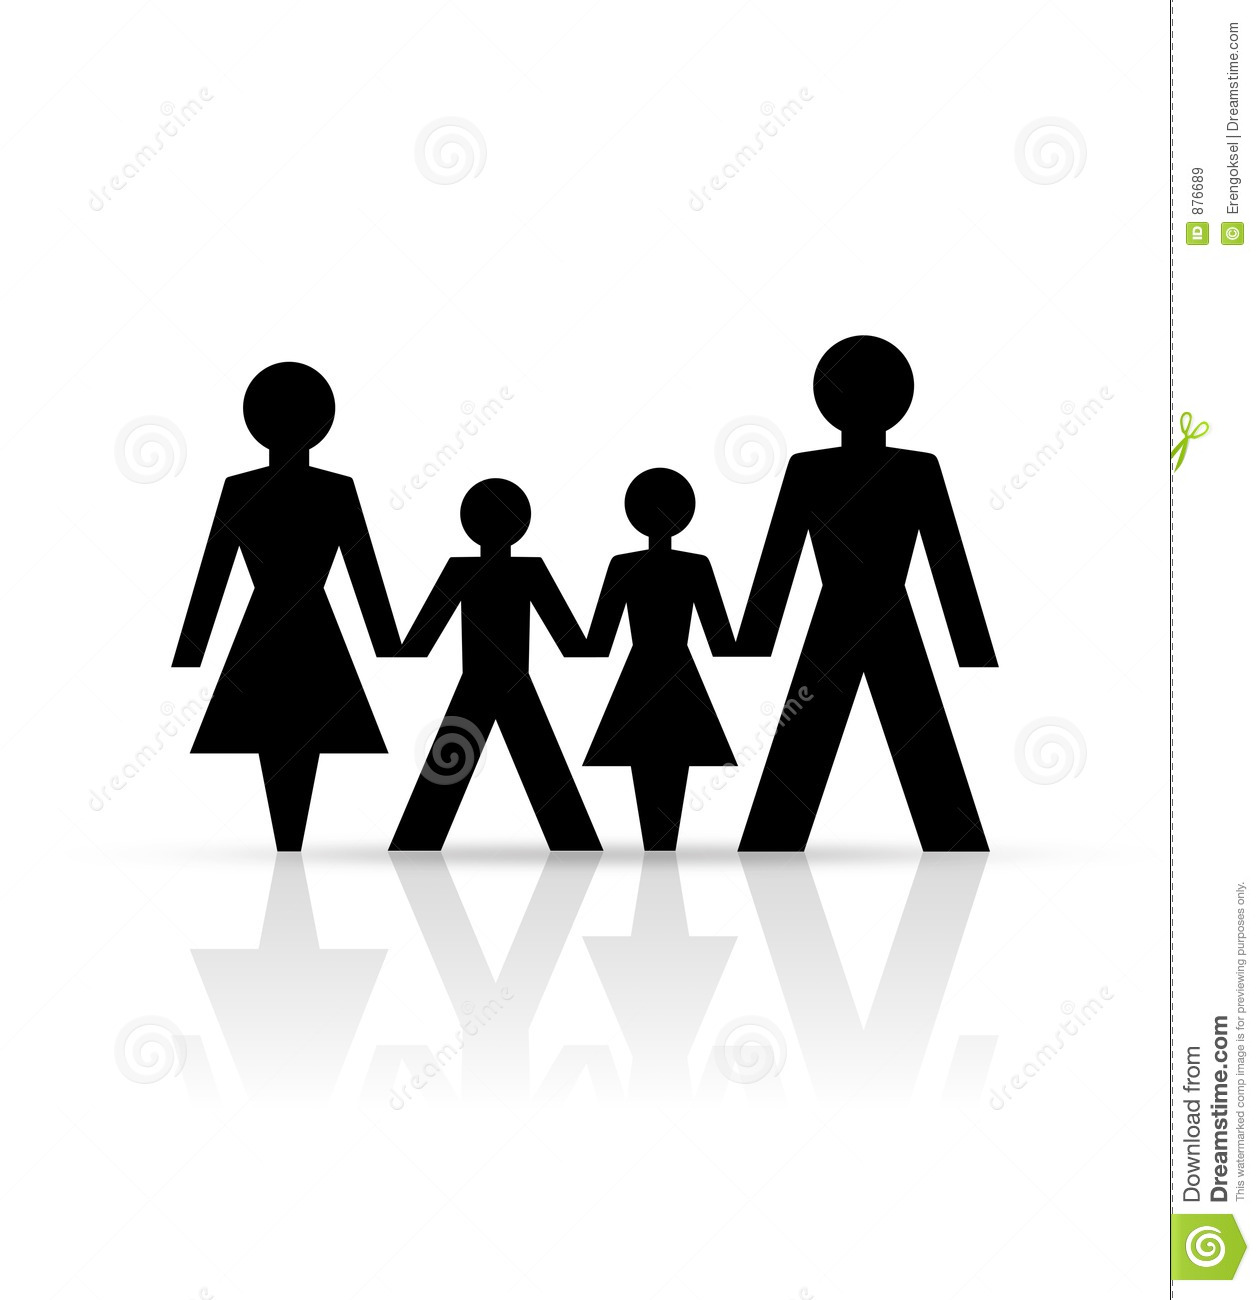 Family Silhouette Clipart.